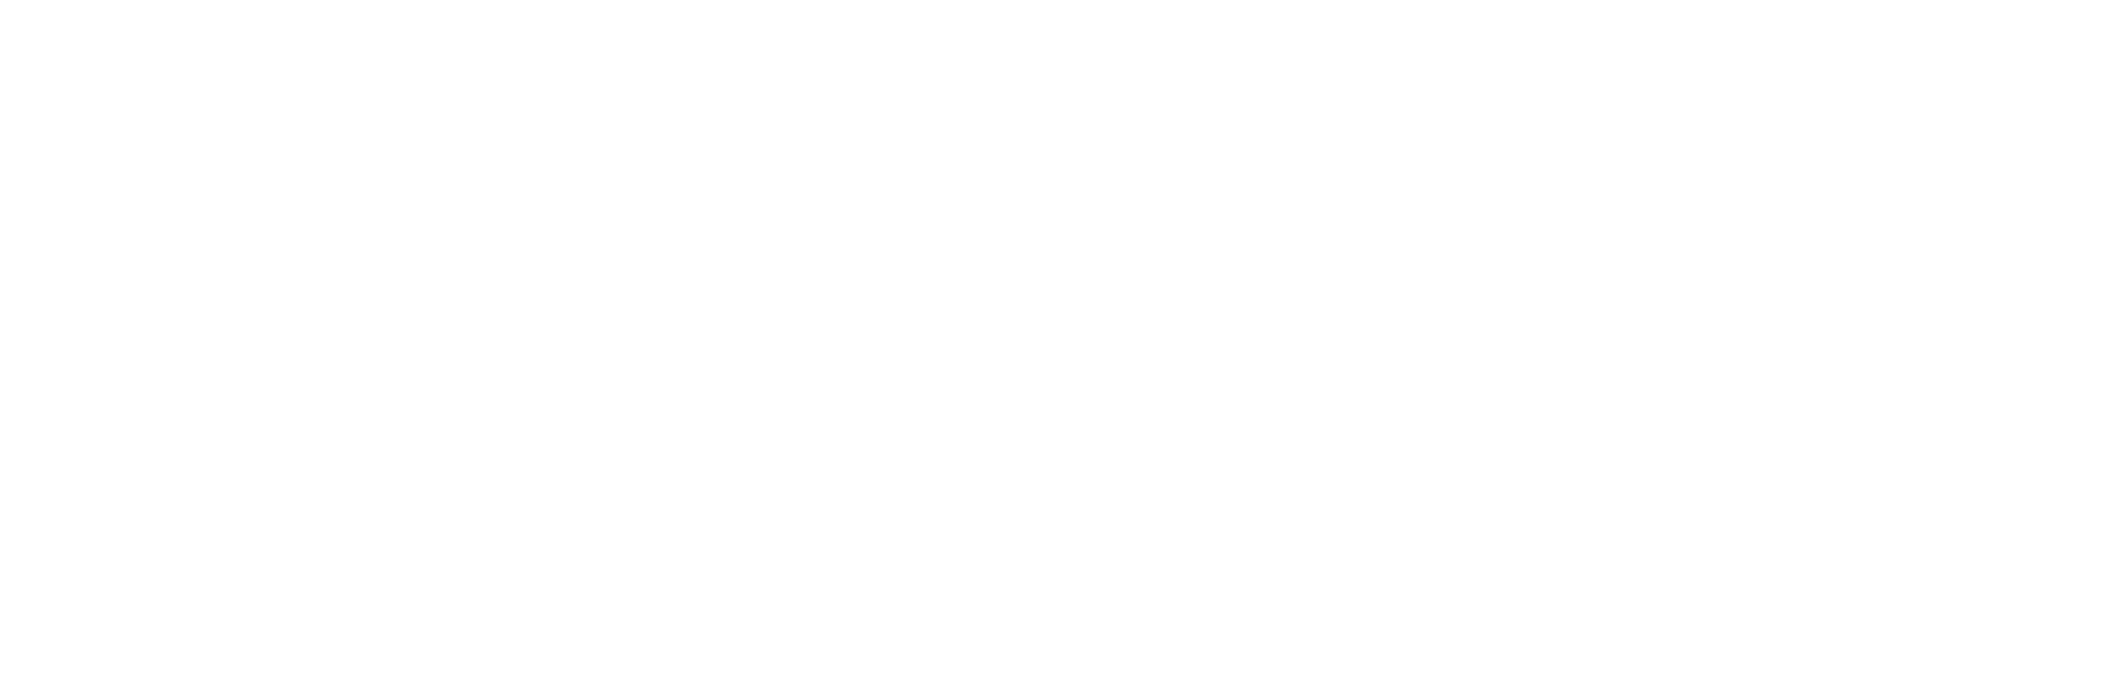 Taylor Architecture and Urbansim